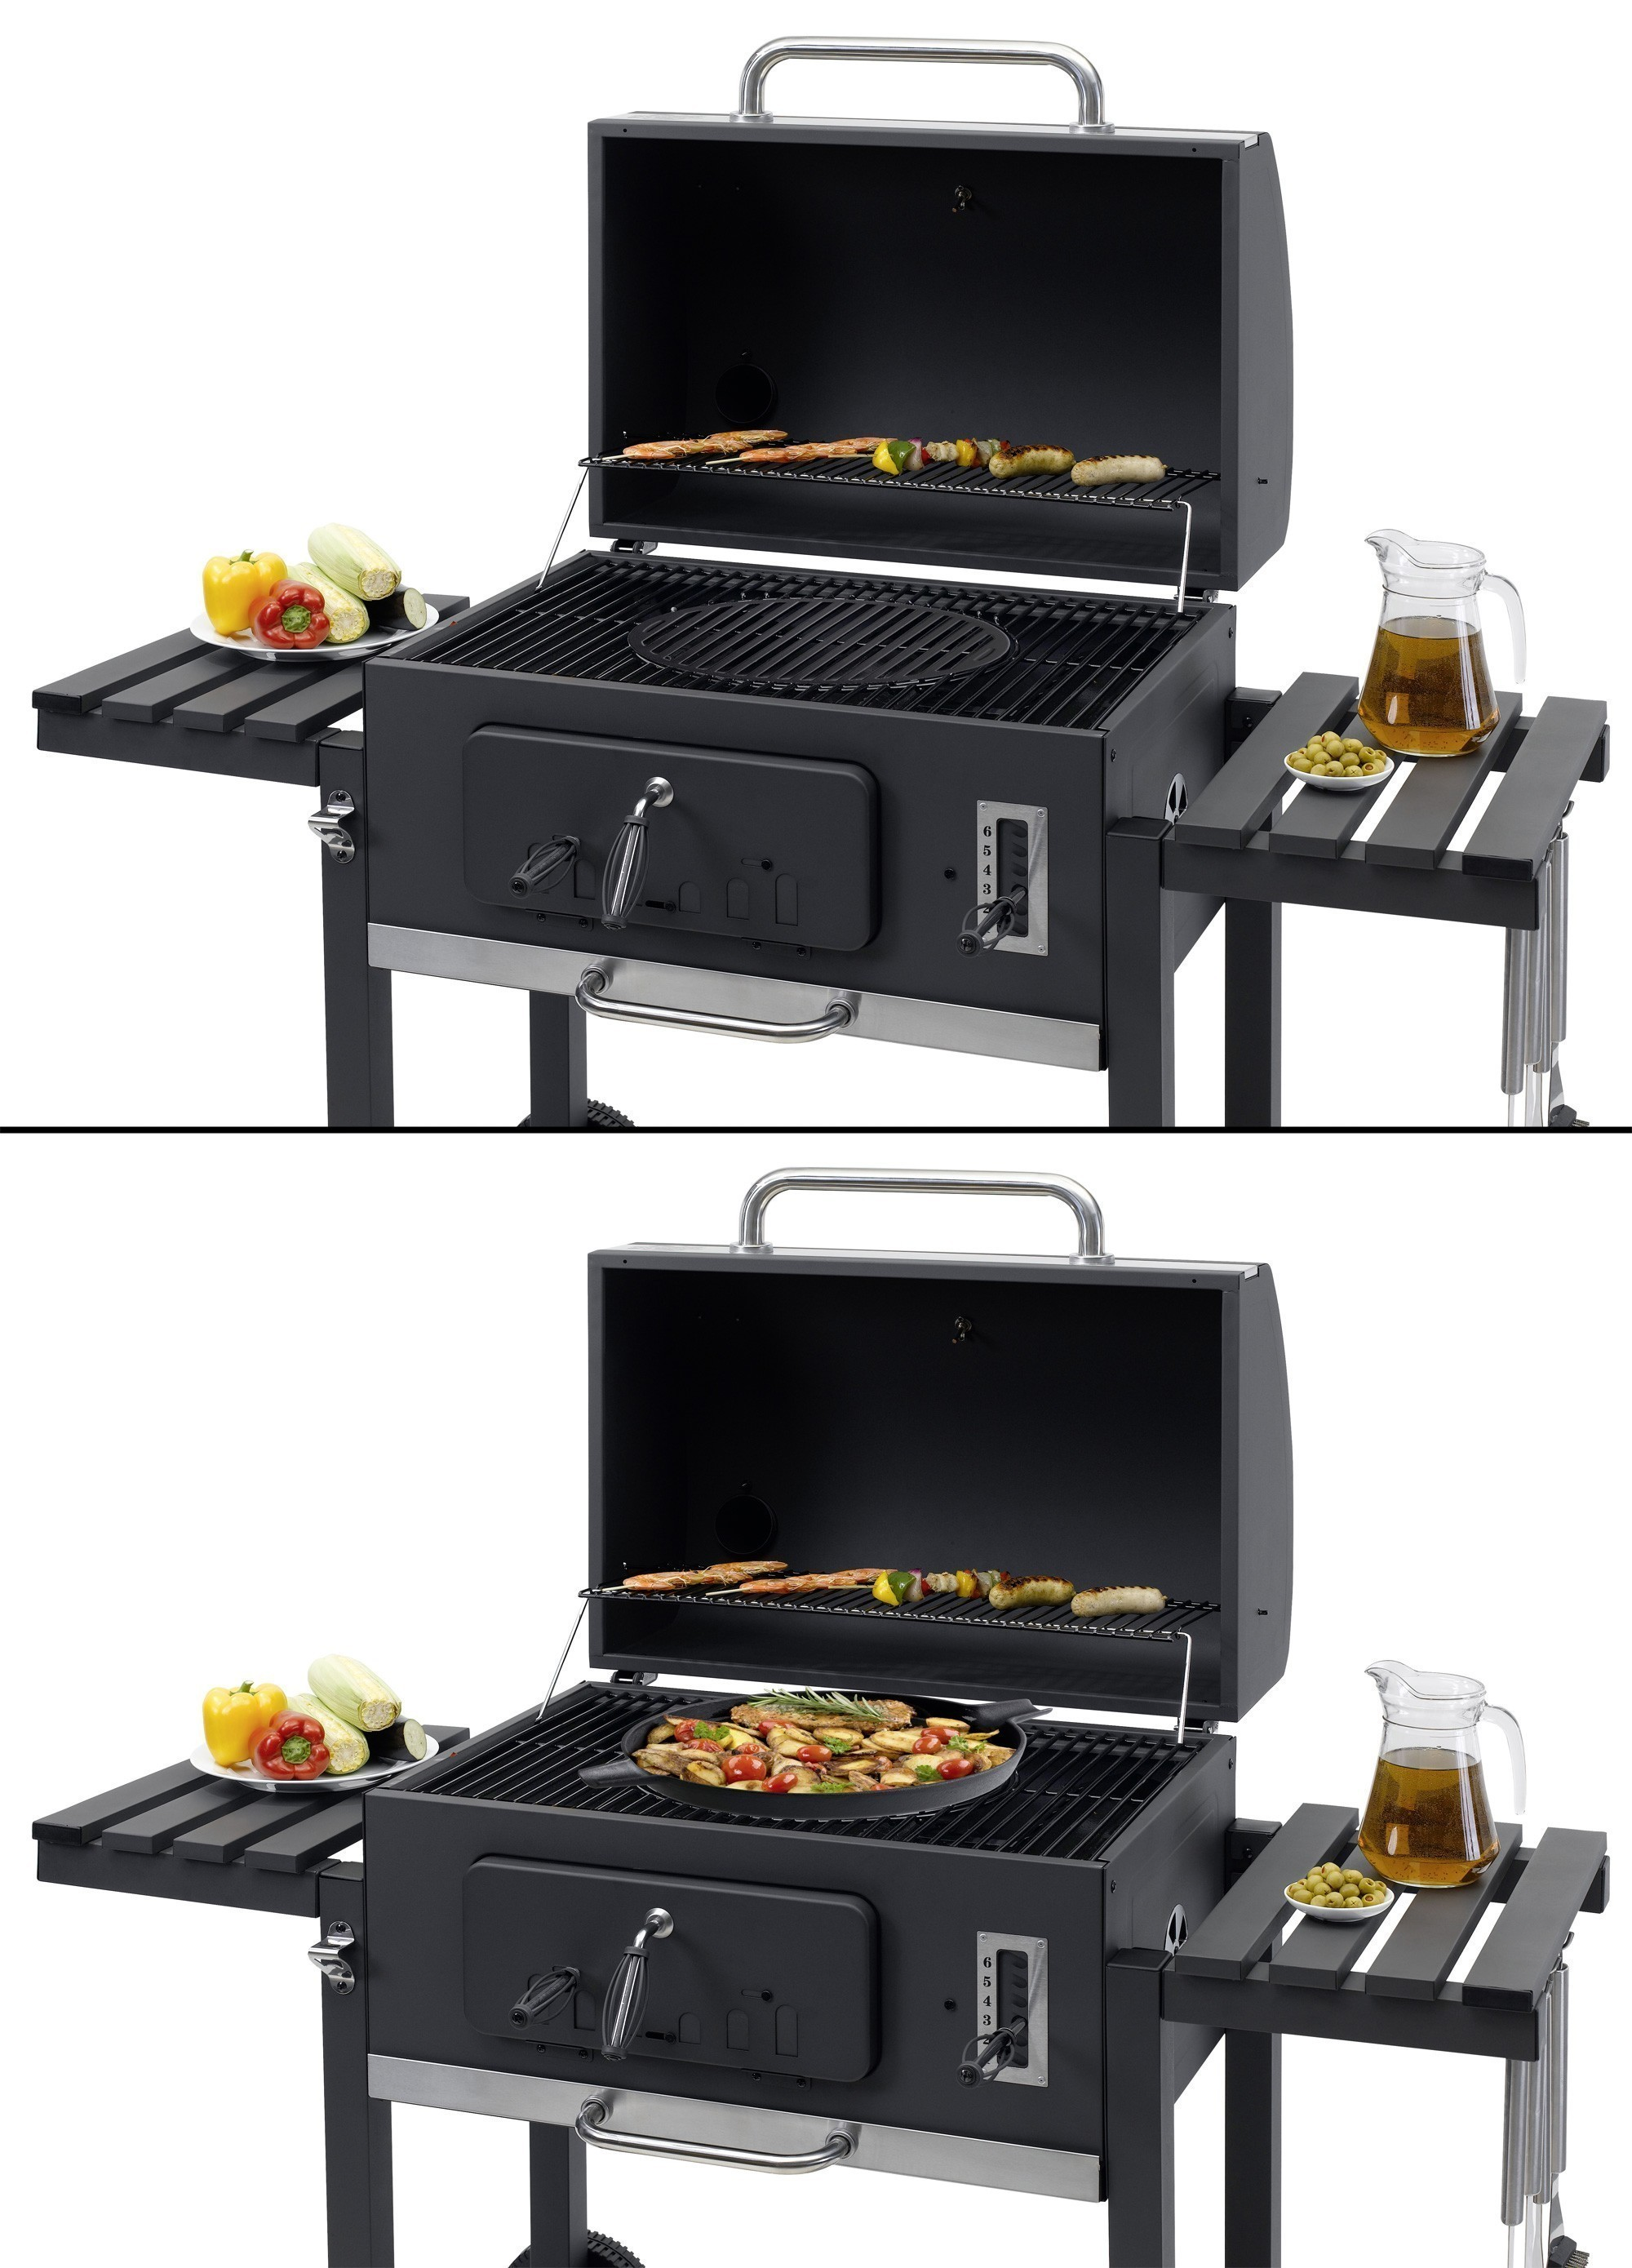 tepro holkohlegrill grillwagen toronto xxl grillfl che. Black Bedroom Furniture Sets. Home Design Ideas